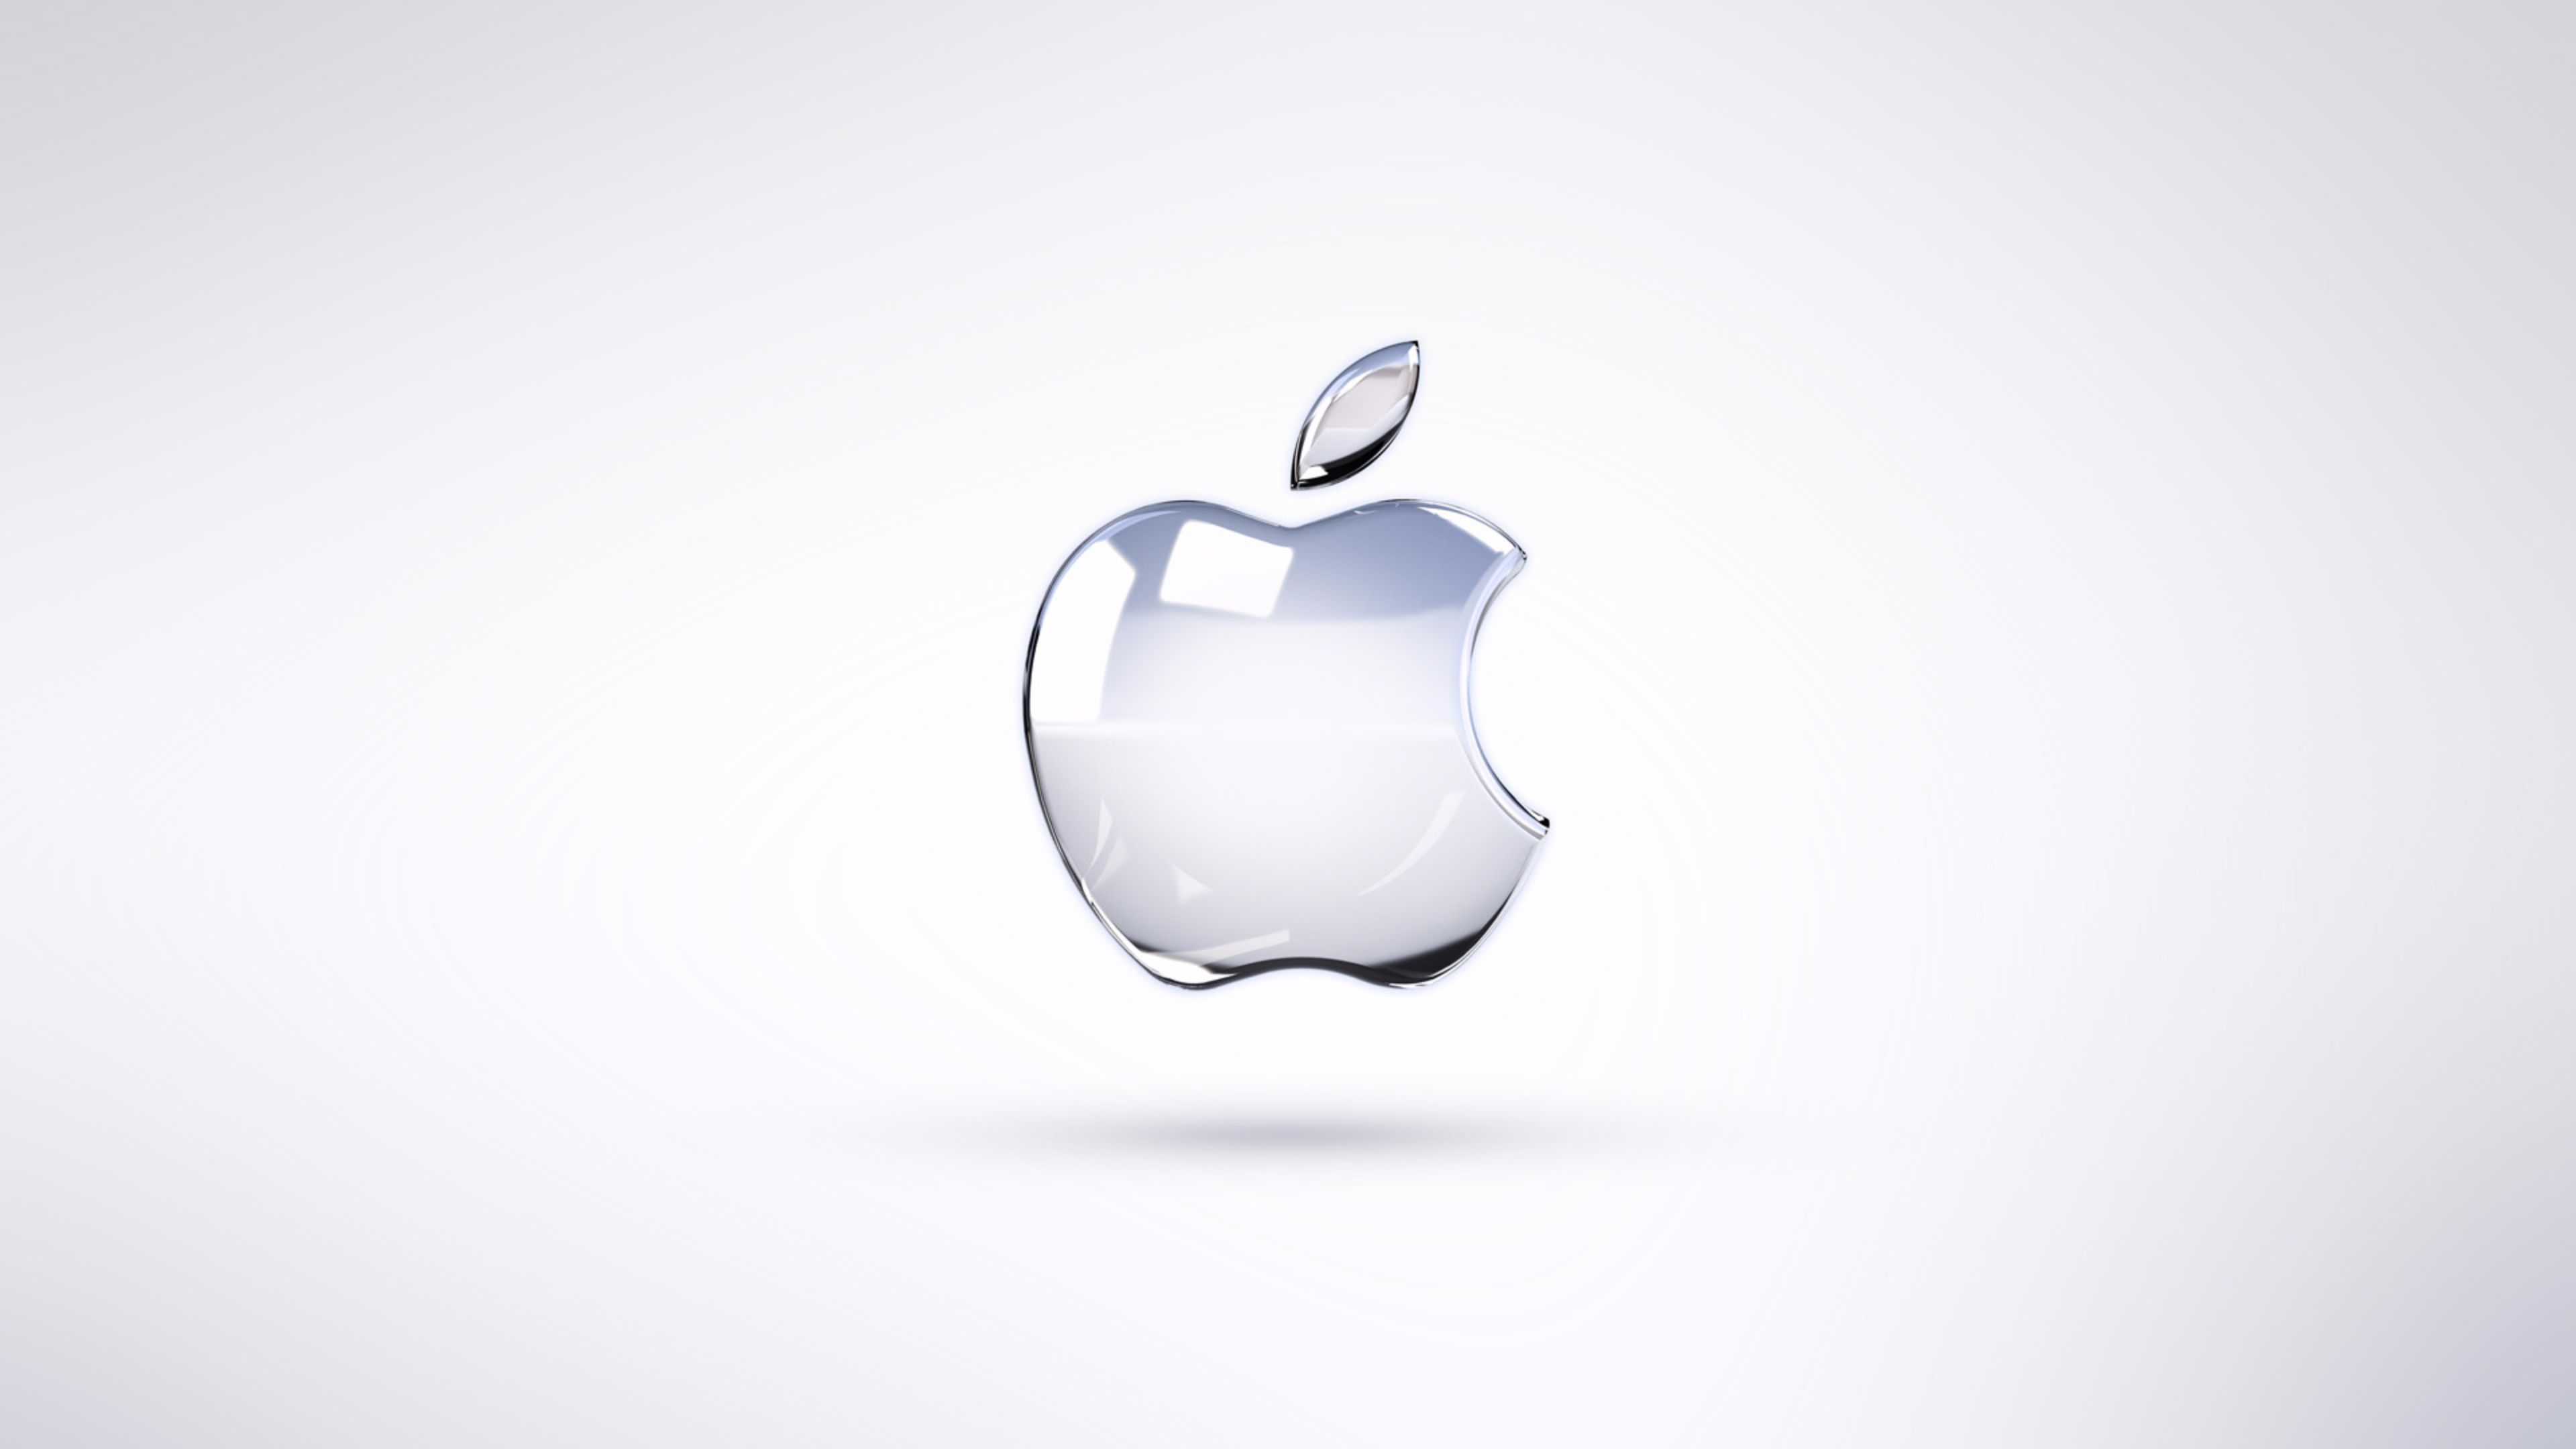 how to get apple higher education discount